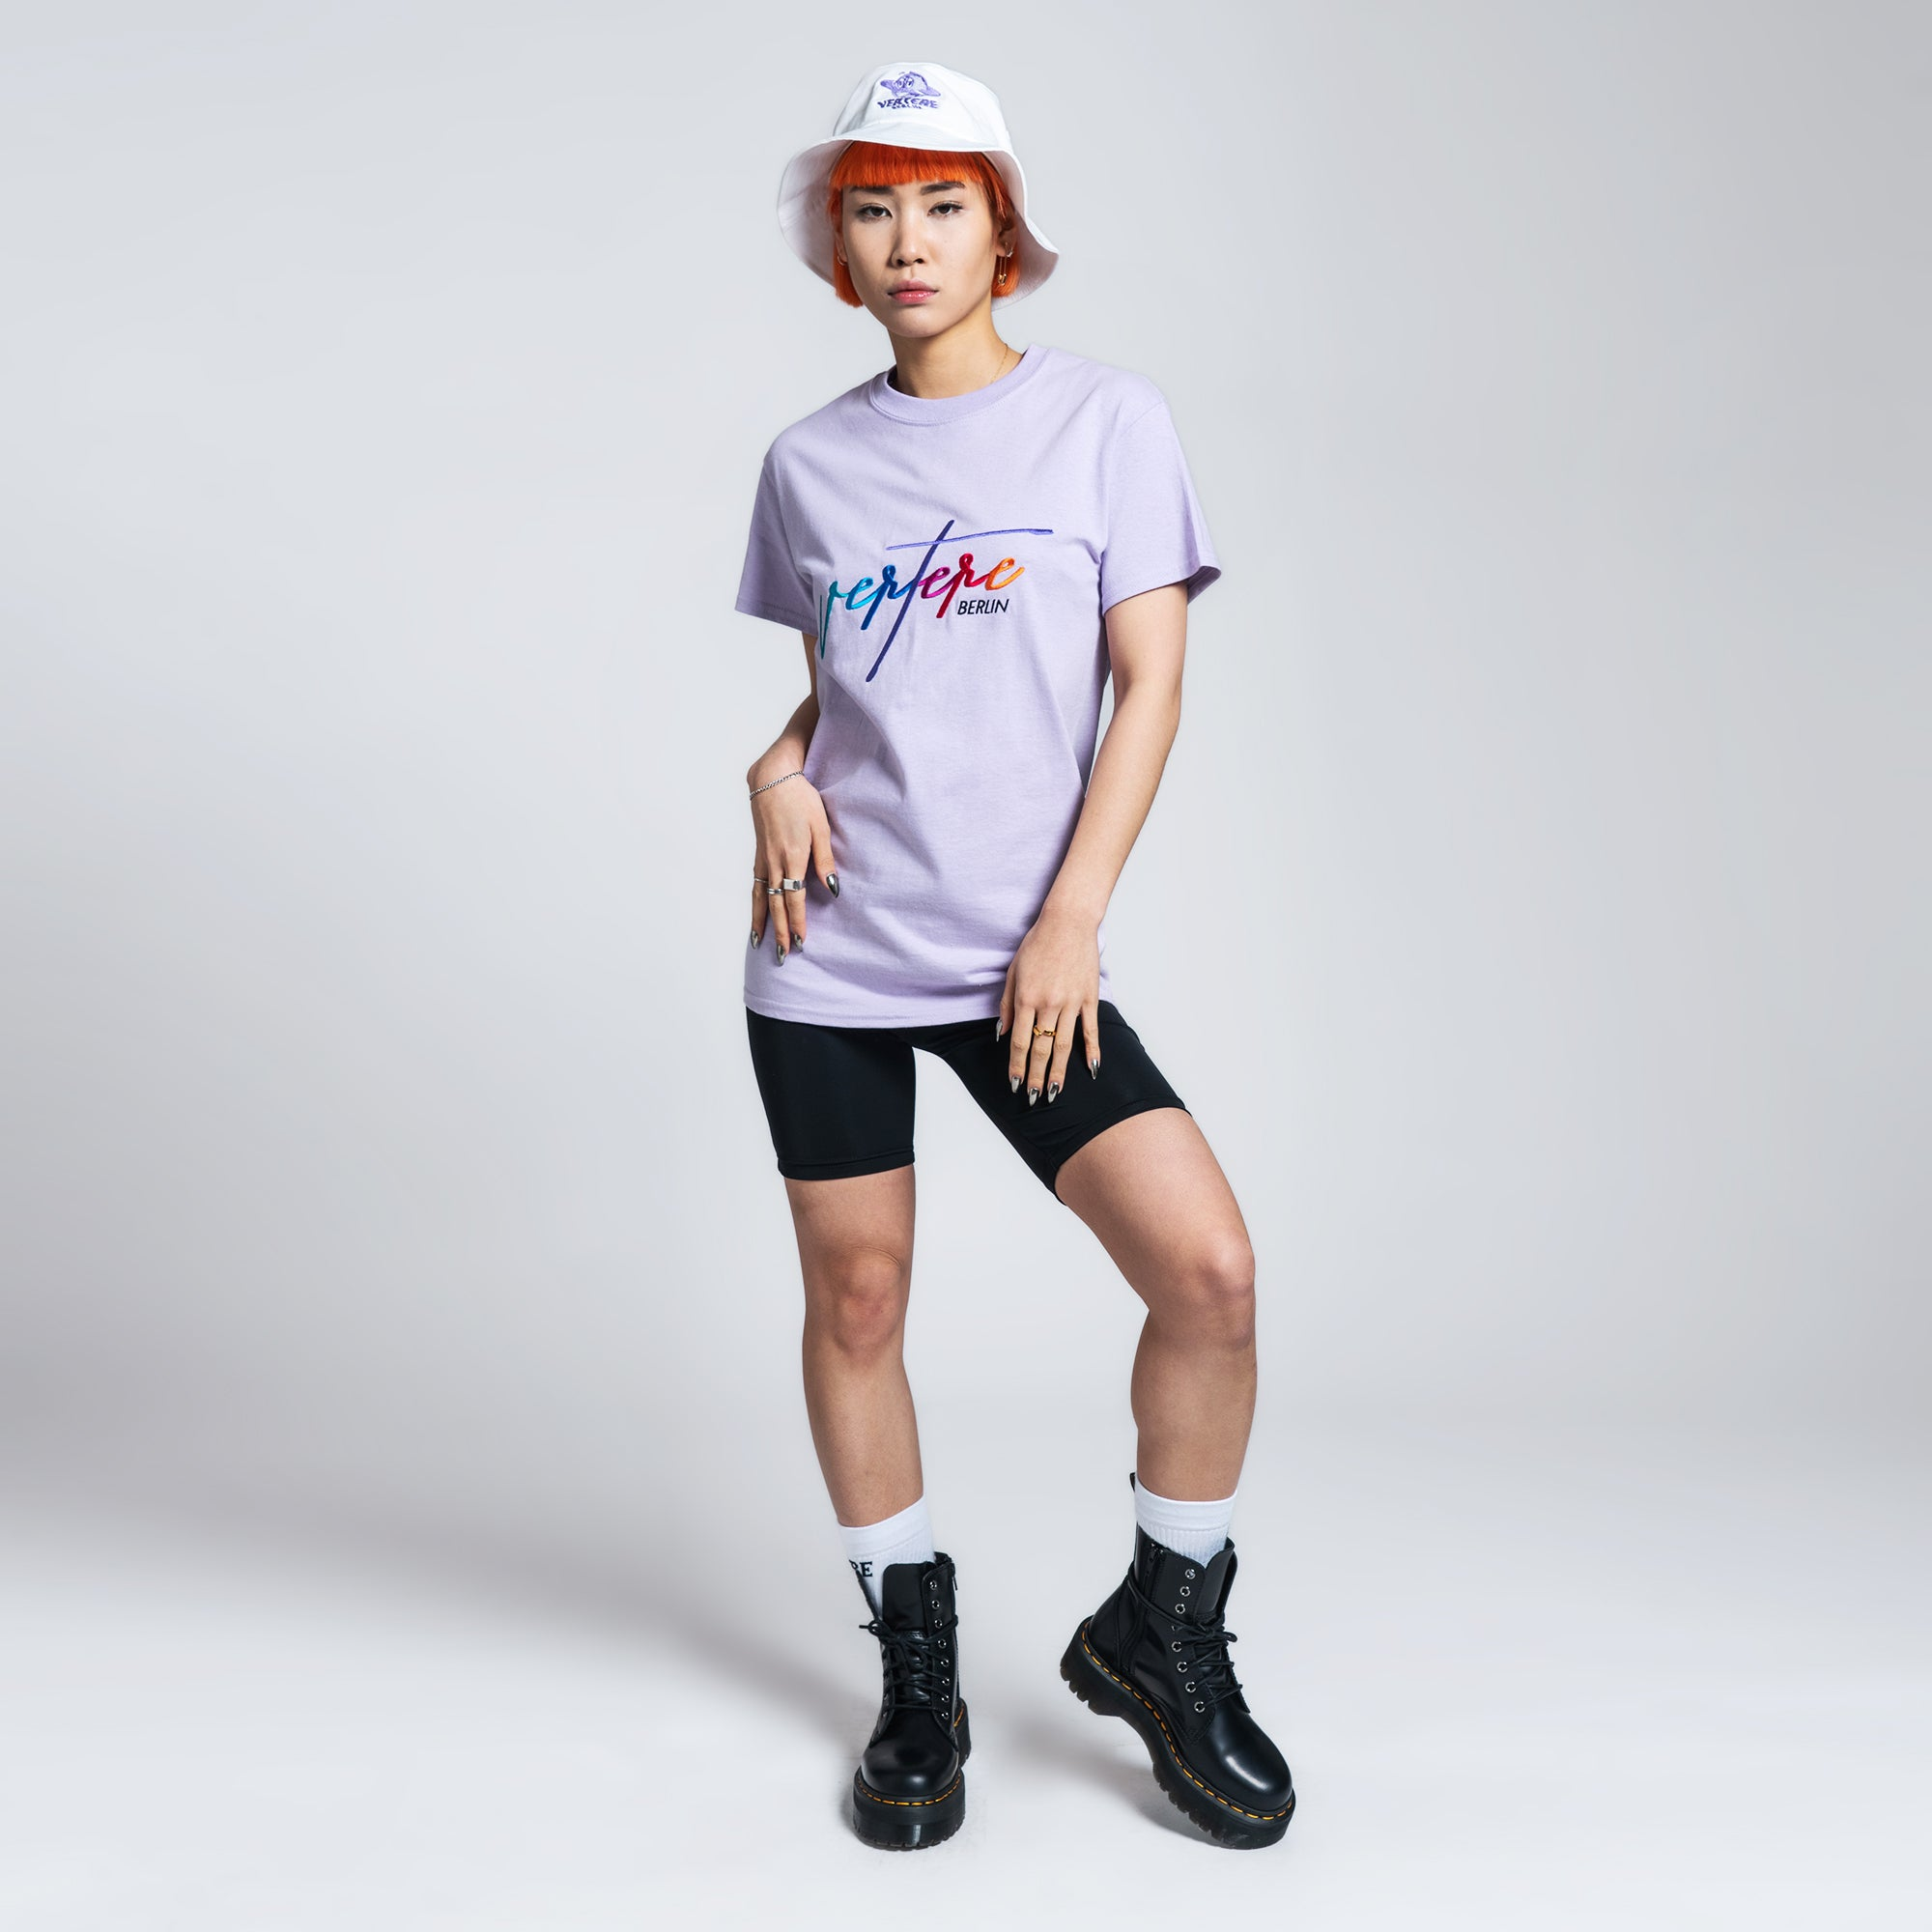 COLORIZE T-SHIRT - LIGHT-PURPLE